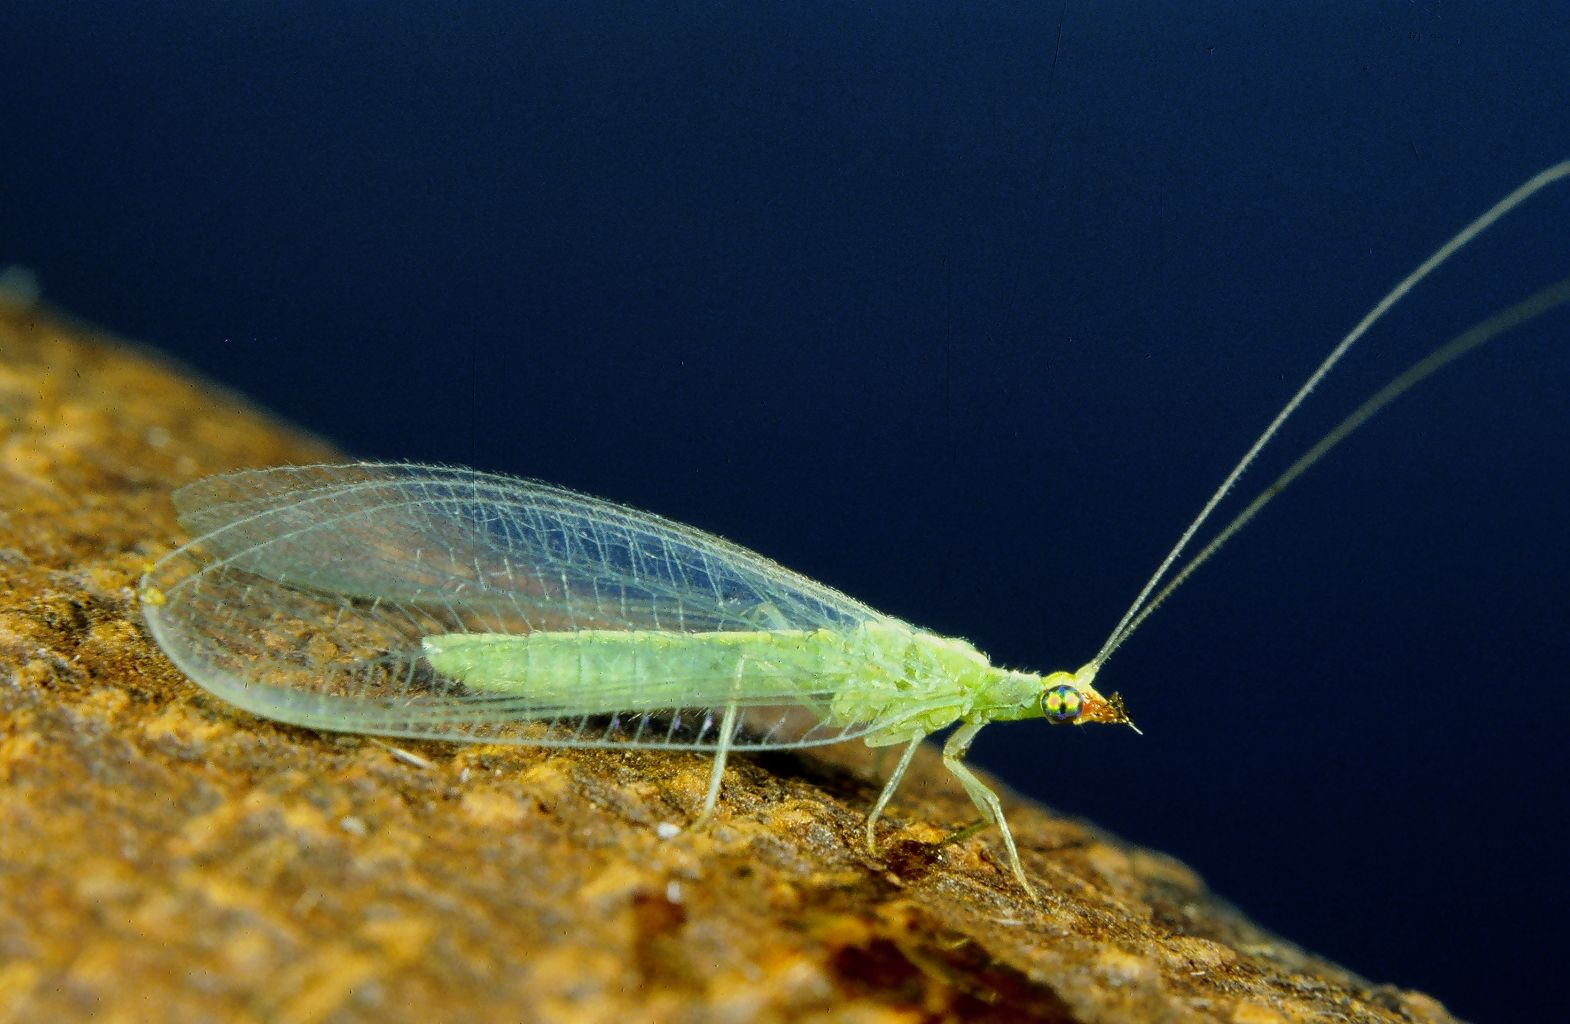 Do green lacewings bite humans?